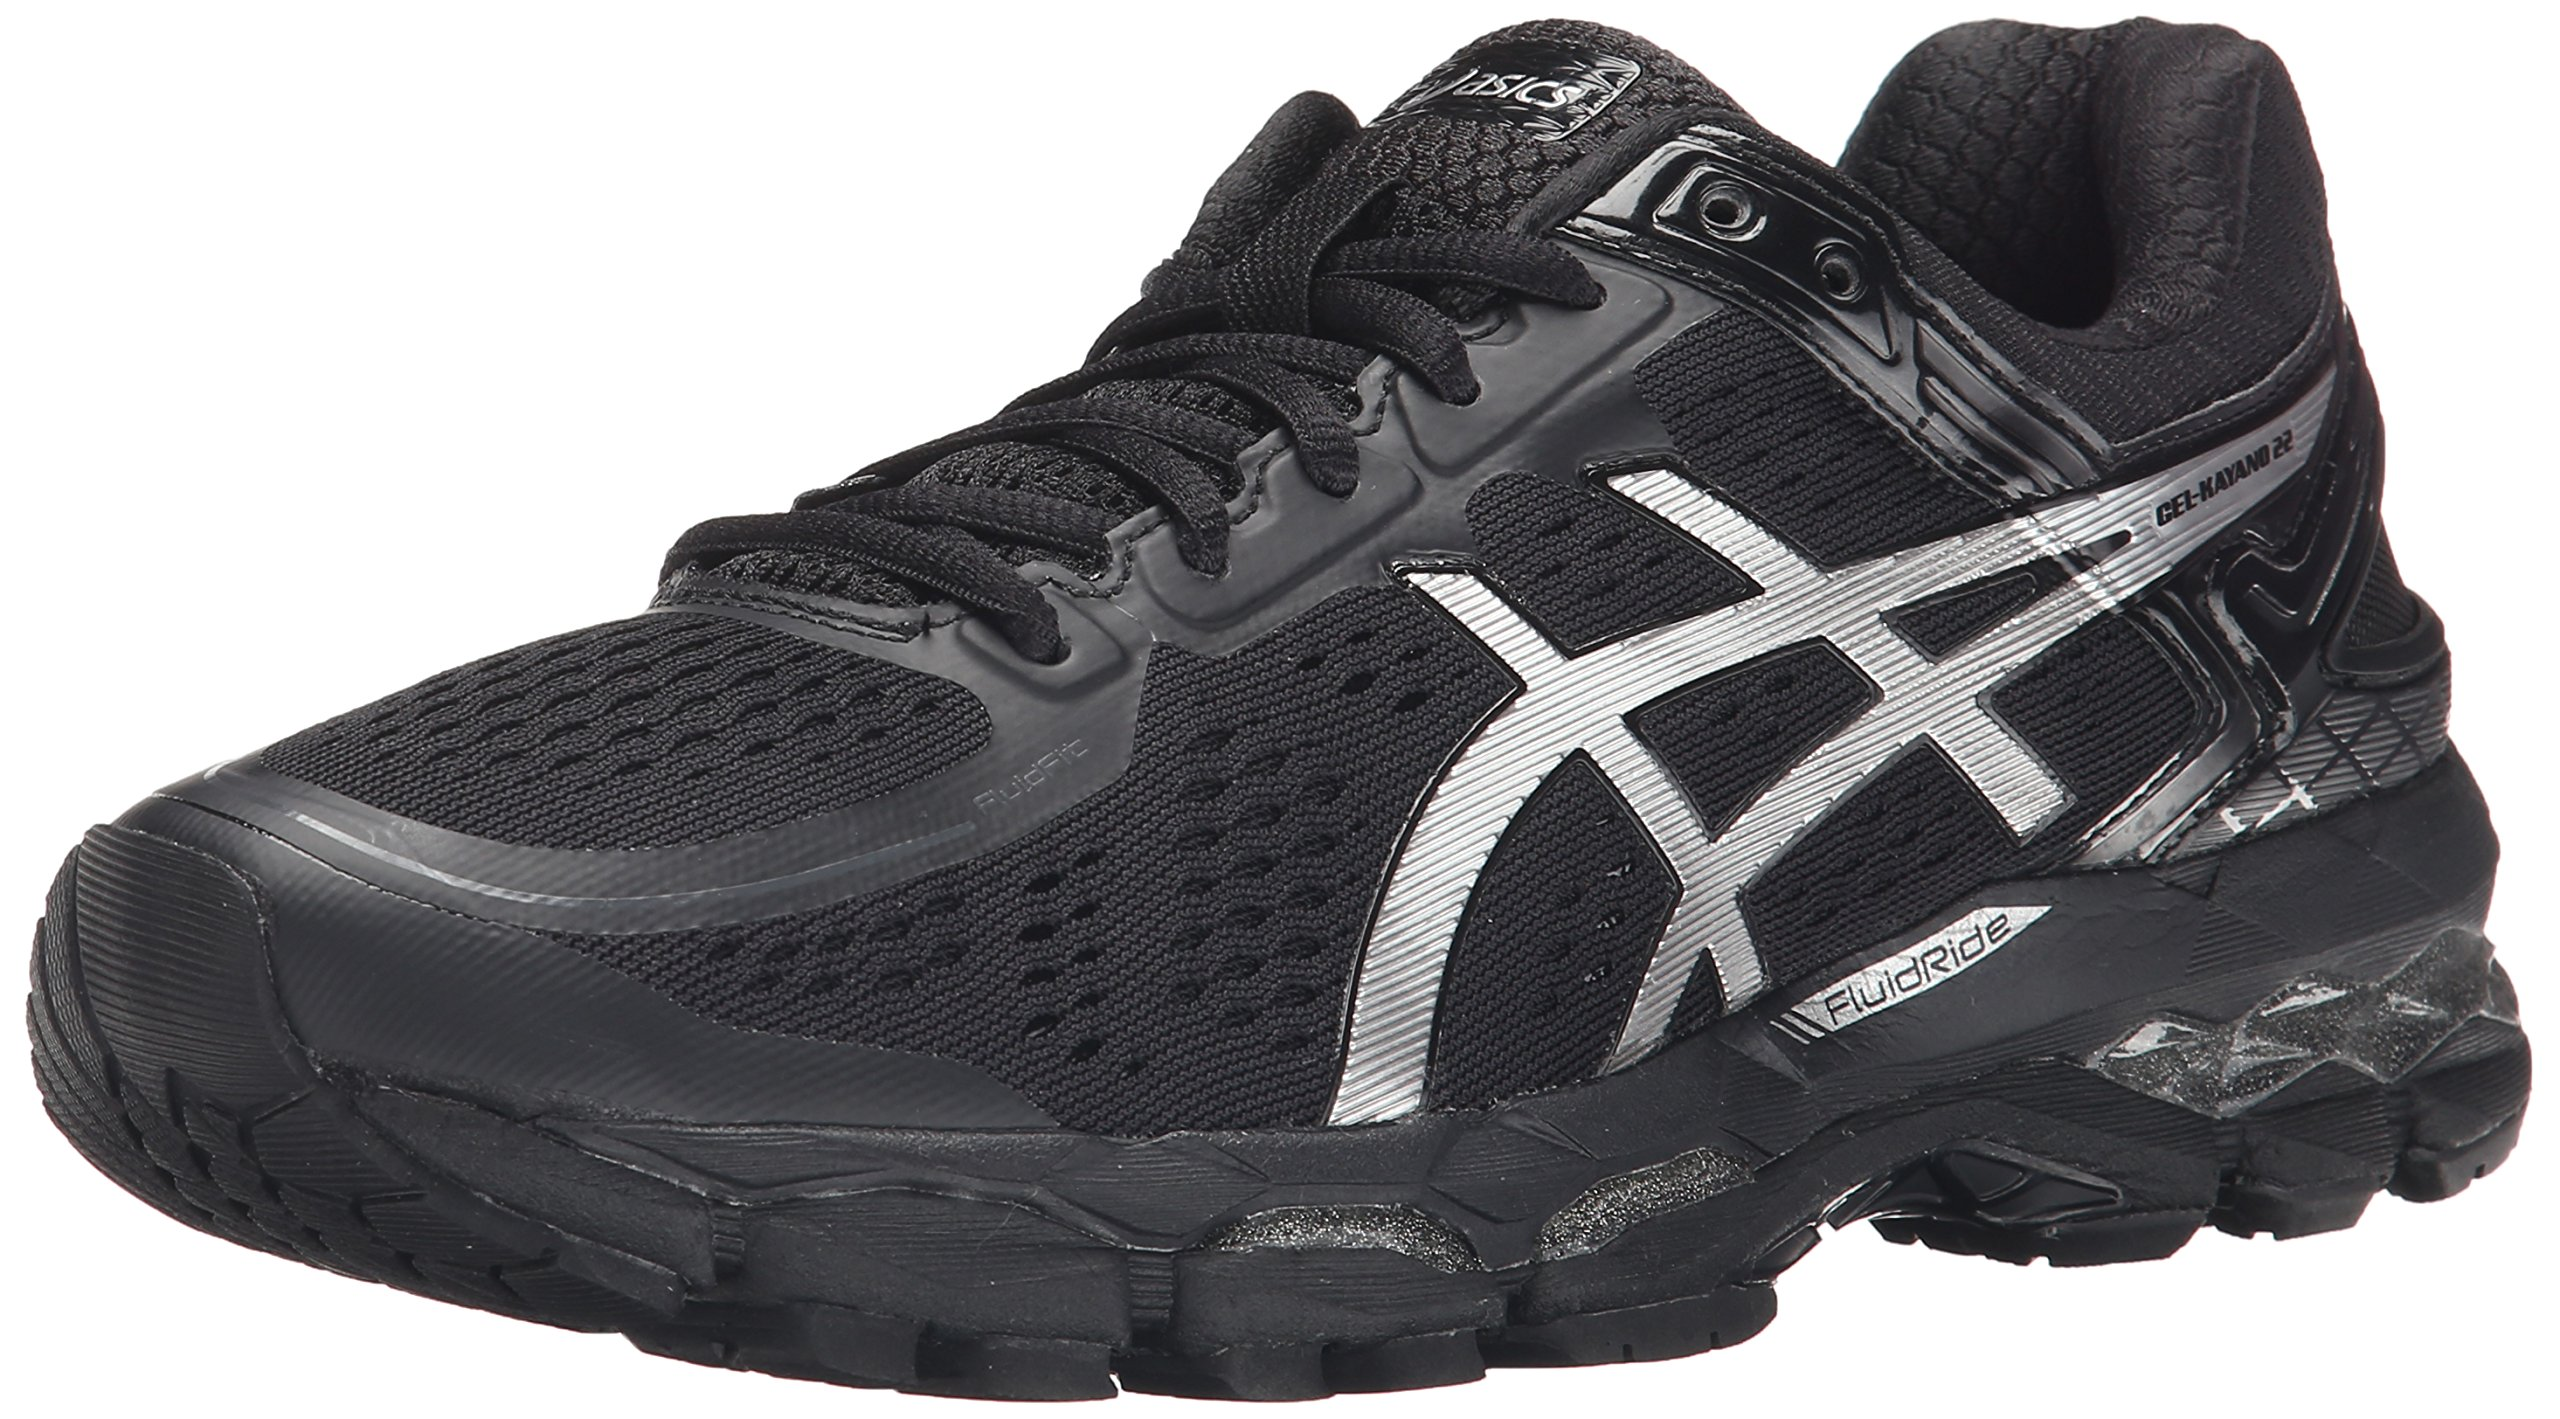 ASICS Women's Gel Kayano 22 Running Shoe, Onyx/Silver/Charcoal, 9.5 M US